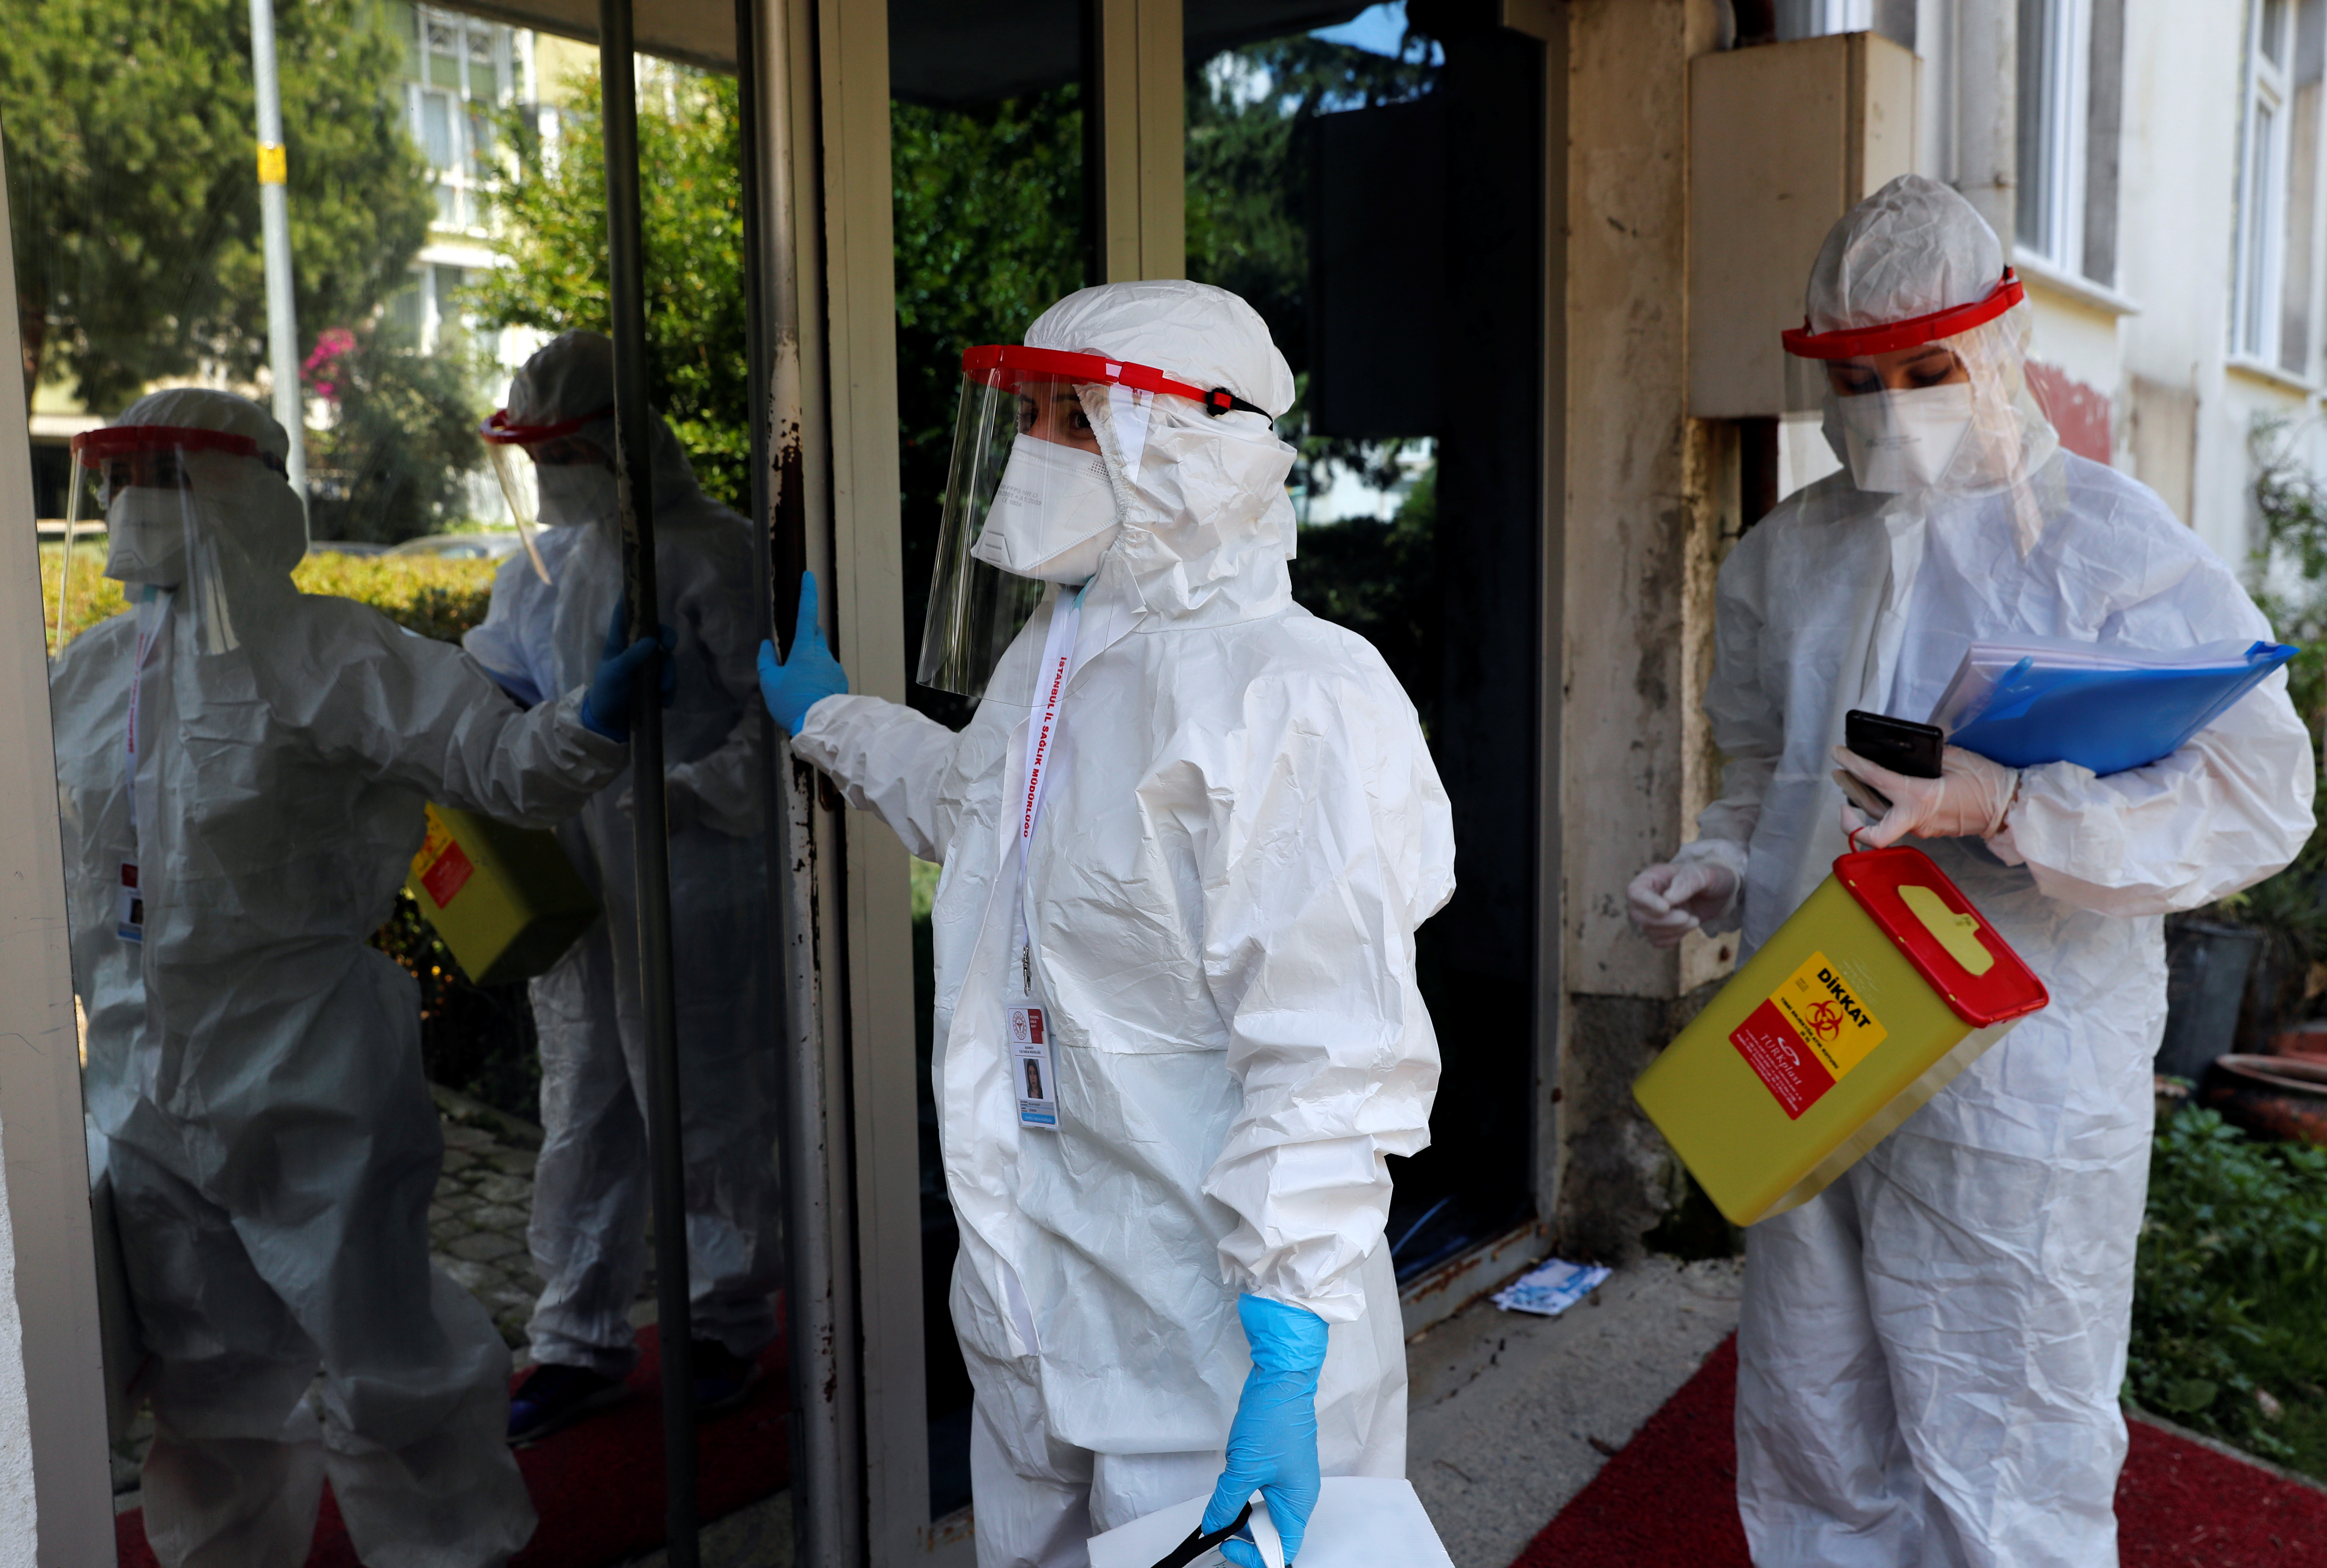 Medical workers of the Bakirkoy District Health Directorate wearing protective suits arrive at a building during an antibody testing program following the coronavirus disease (COVID-19) outbreak, in Istanbul, Turkey, June 17, 2020. REUTERS/Murad Sezer/Files